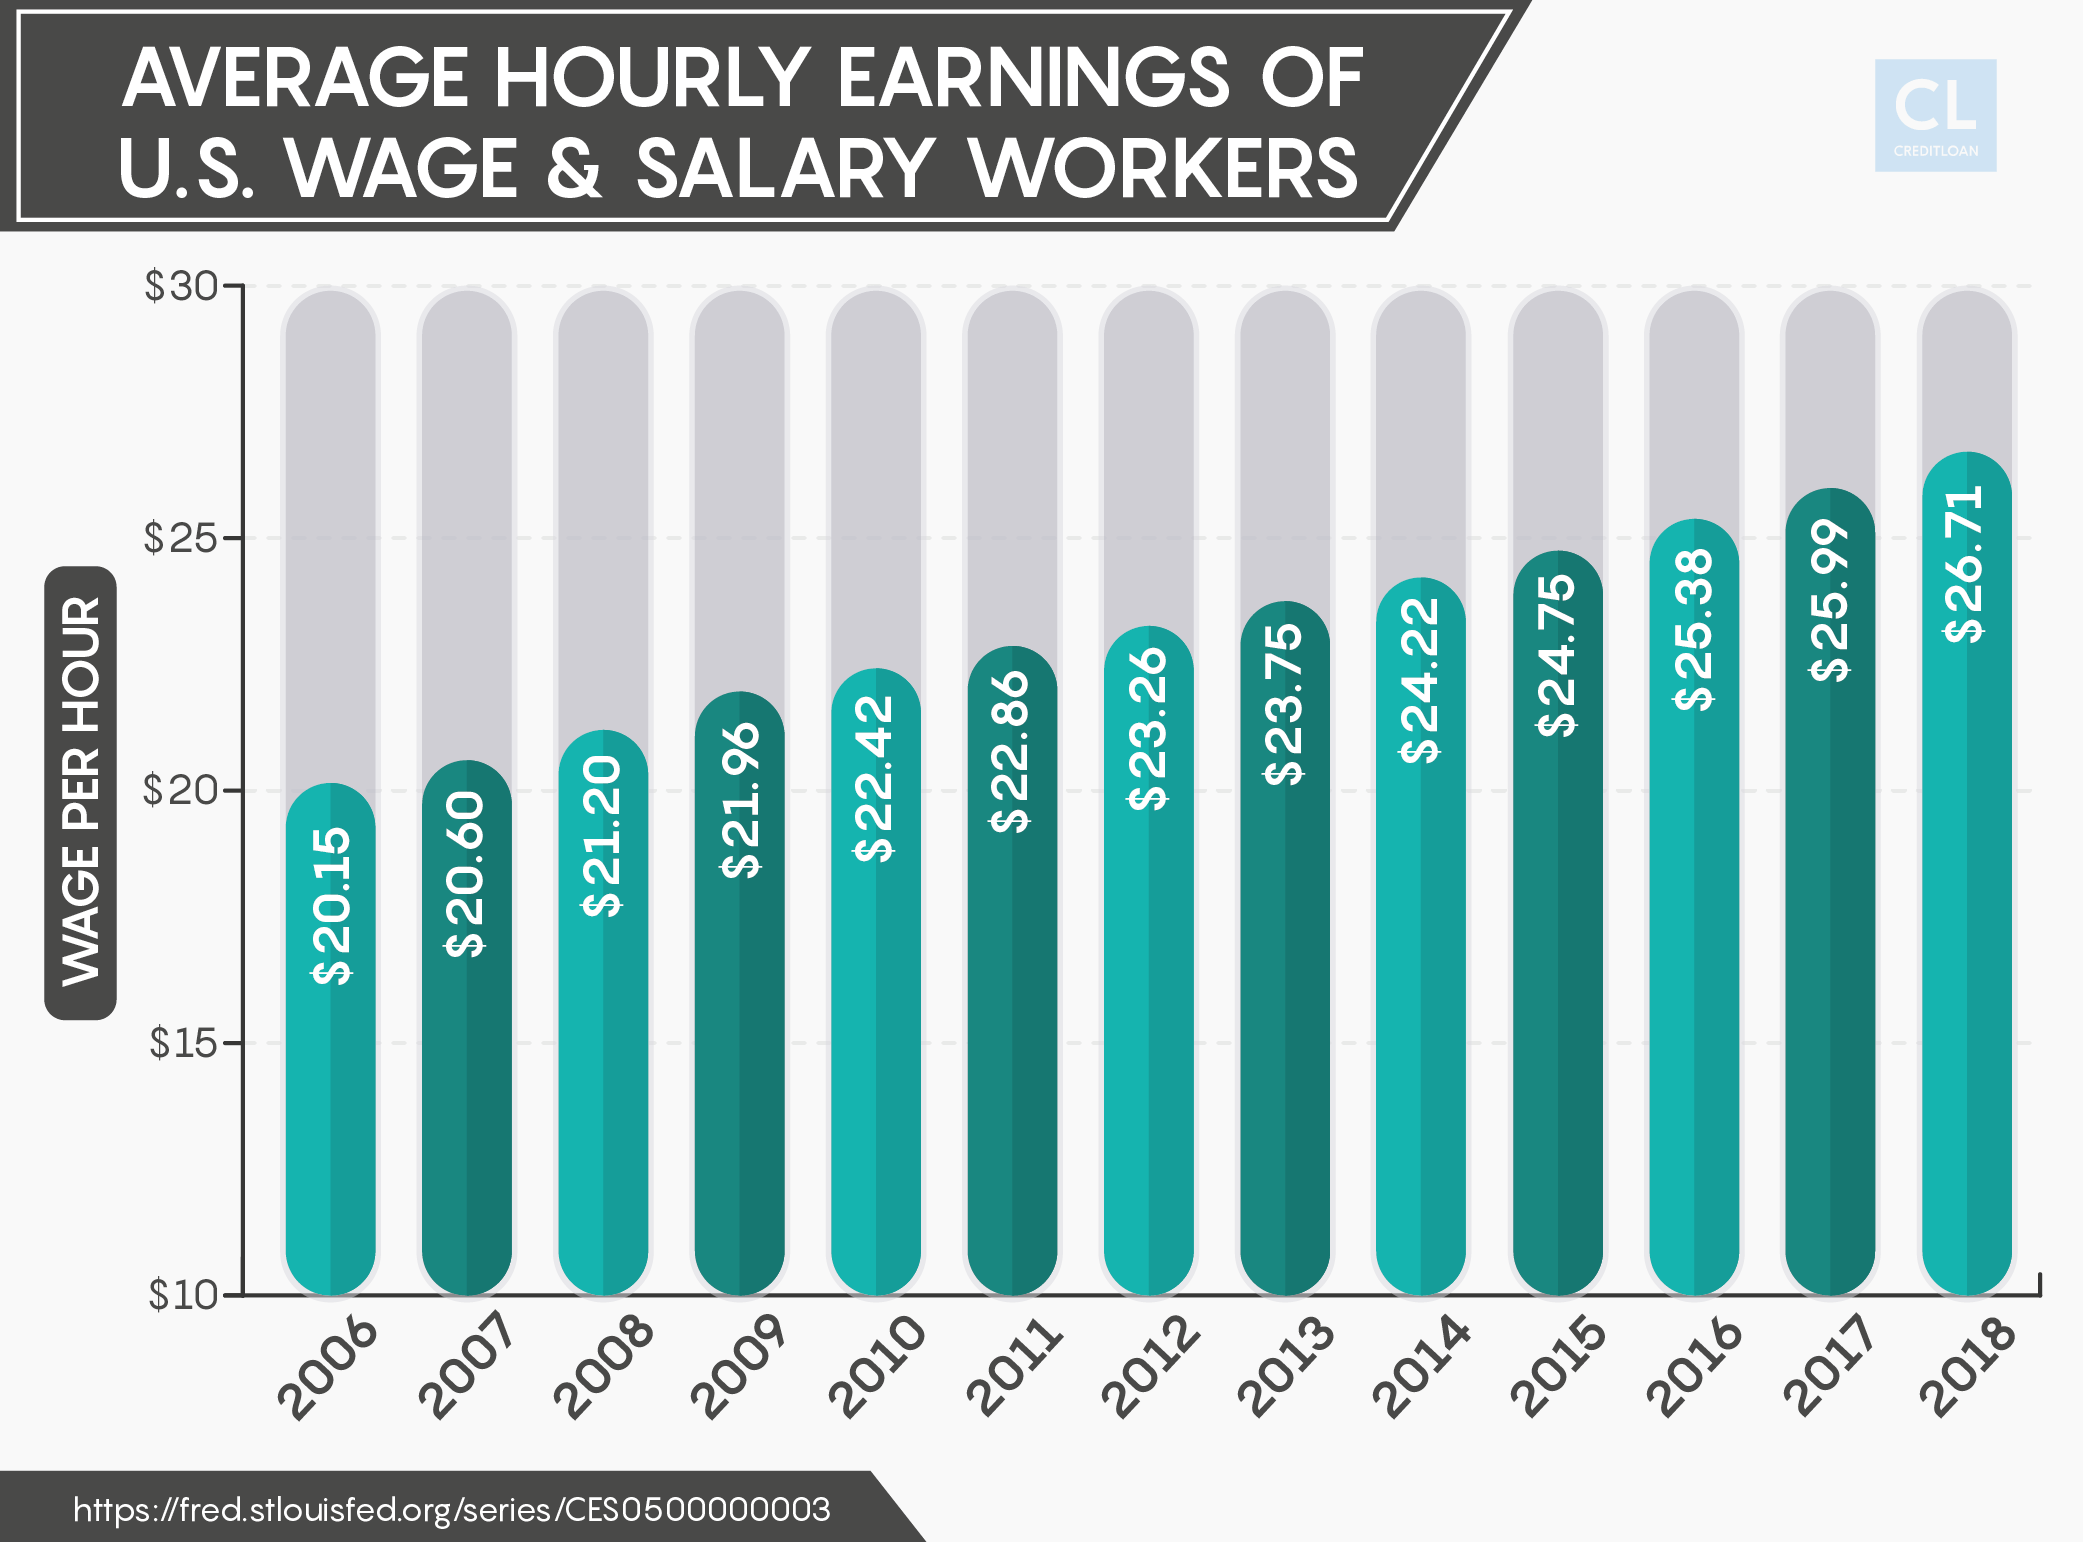 Average Hourly Earnings of U.S. Wage & Salary Workers from 2006-2018